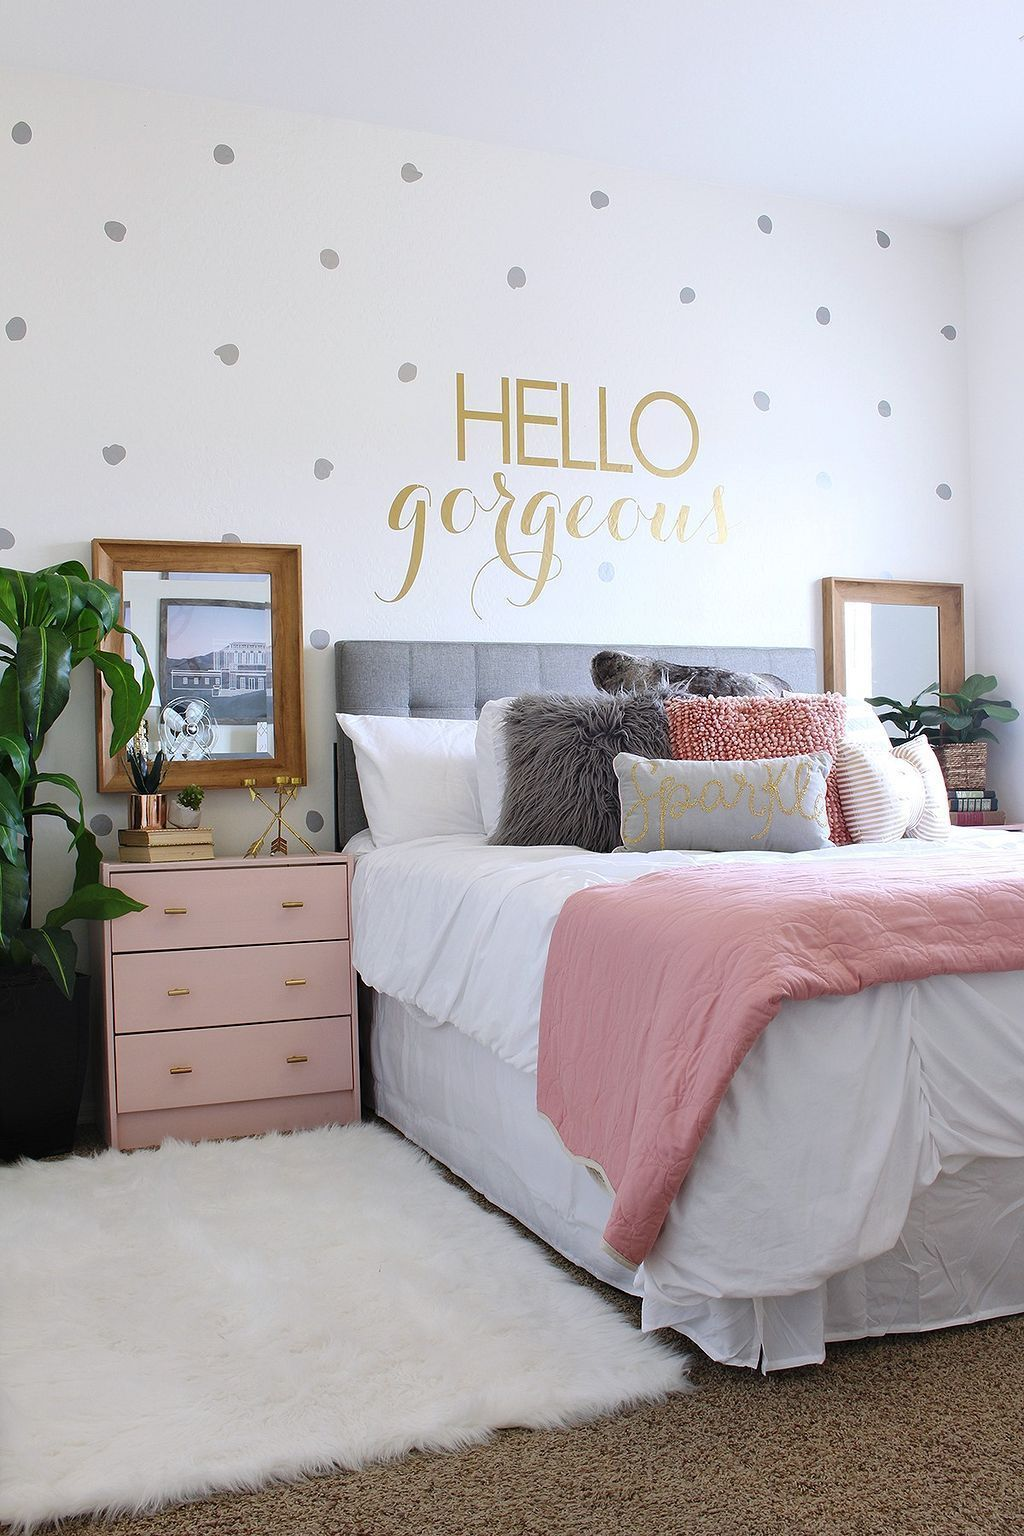 2018 Room Ideas for Teen Girls - Decoration Ideas for Bedrooms Check ...